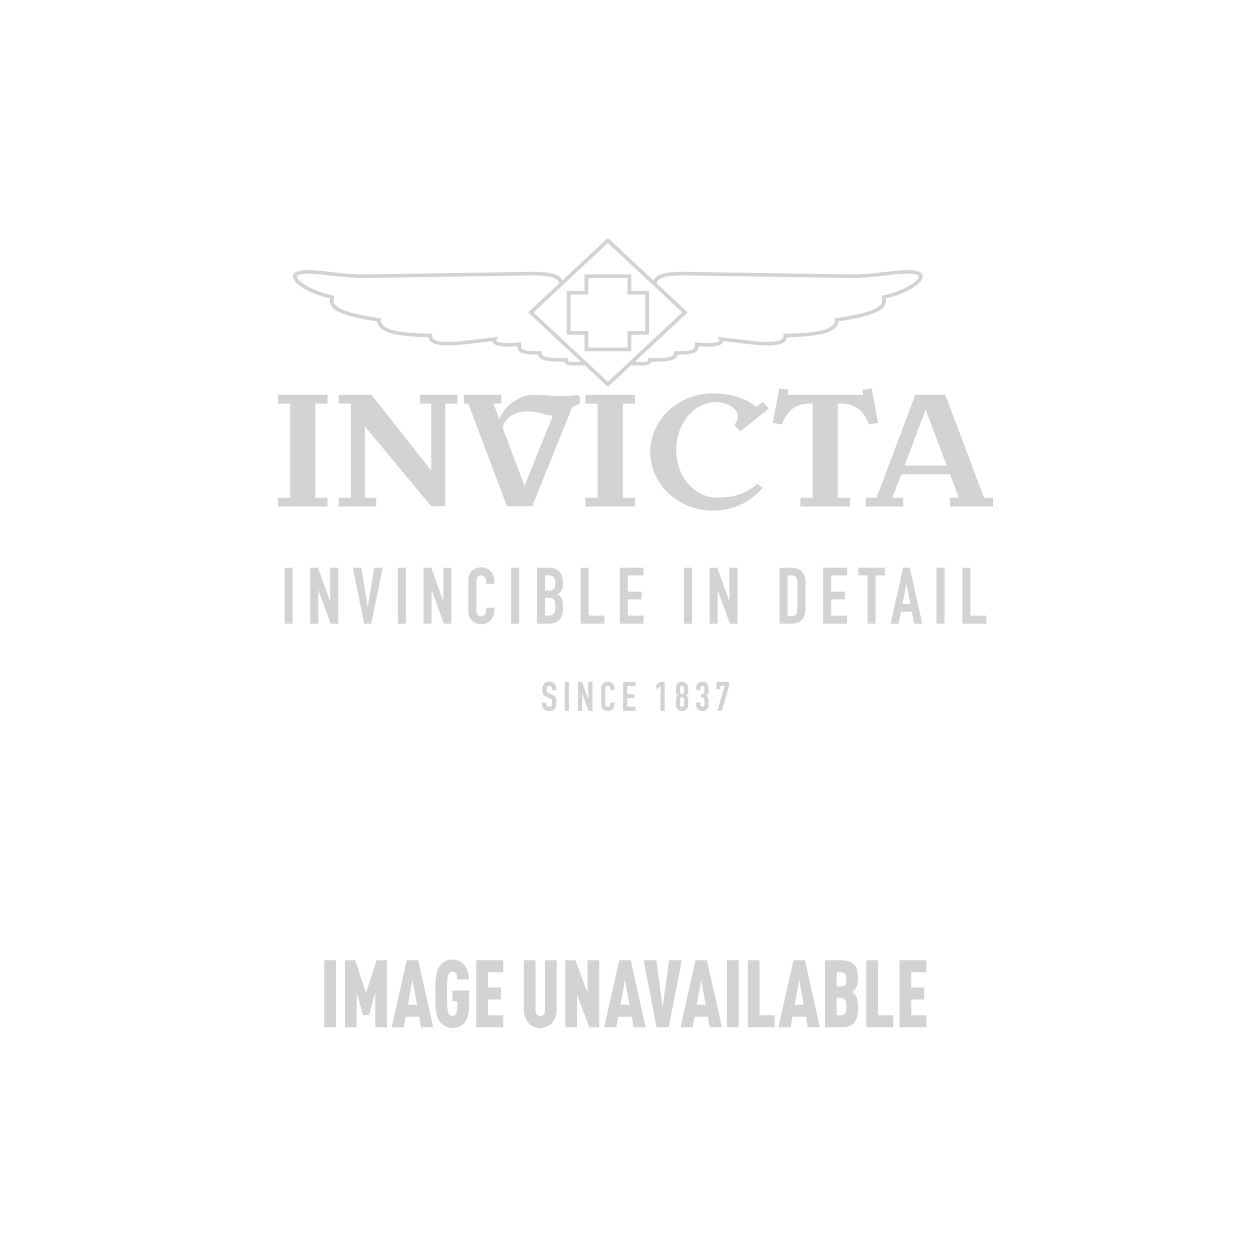 Invicta Vintage Mechanical Watch - Gold, Stainless Steel case with Brown tone Leather band - Model 18602